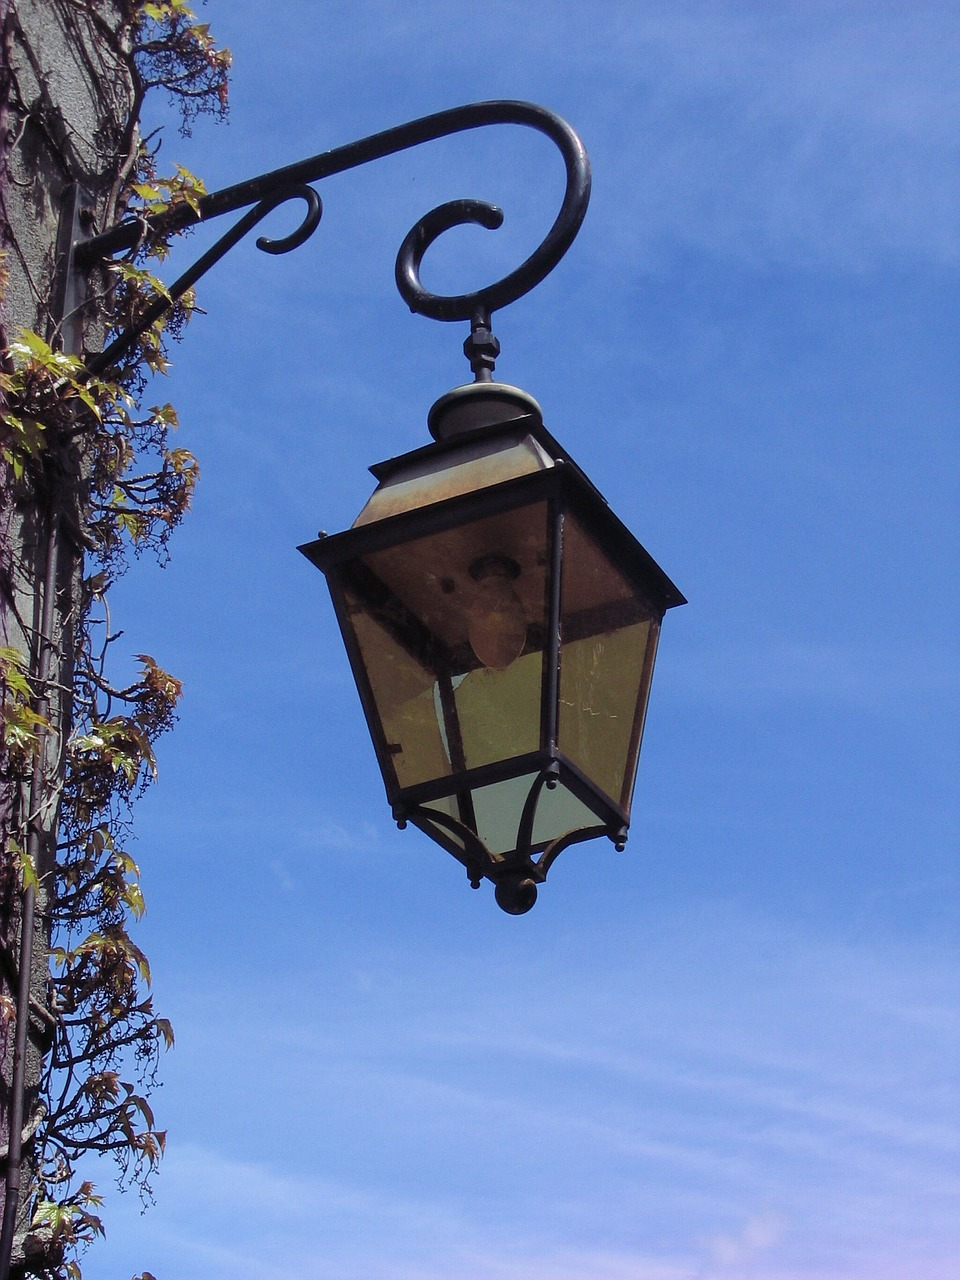 lantern,lights,lamp,street lamp,sky,light,old,decorated,metal,architecture,ancient,iron,free pictures, free photos, free images, royalty free, free illustrations